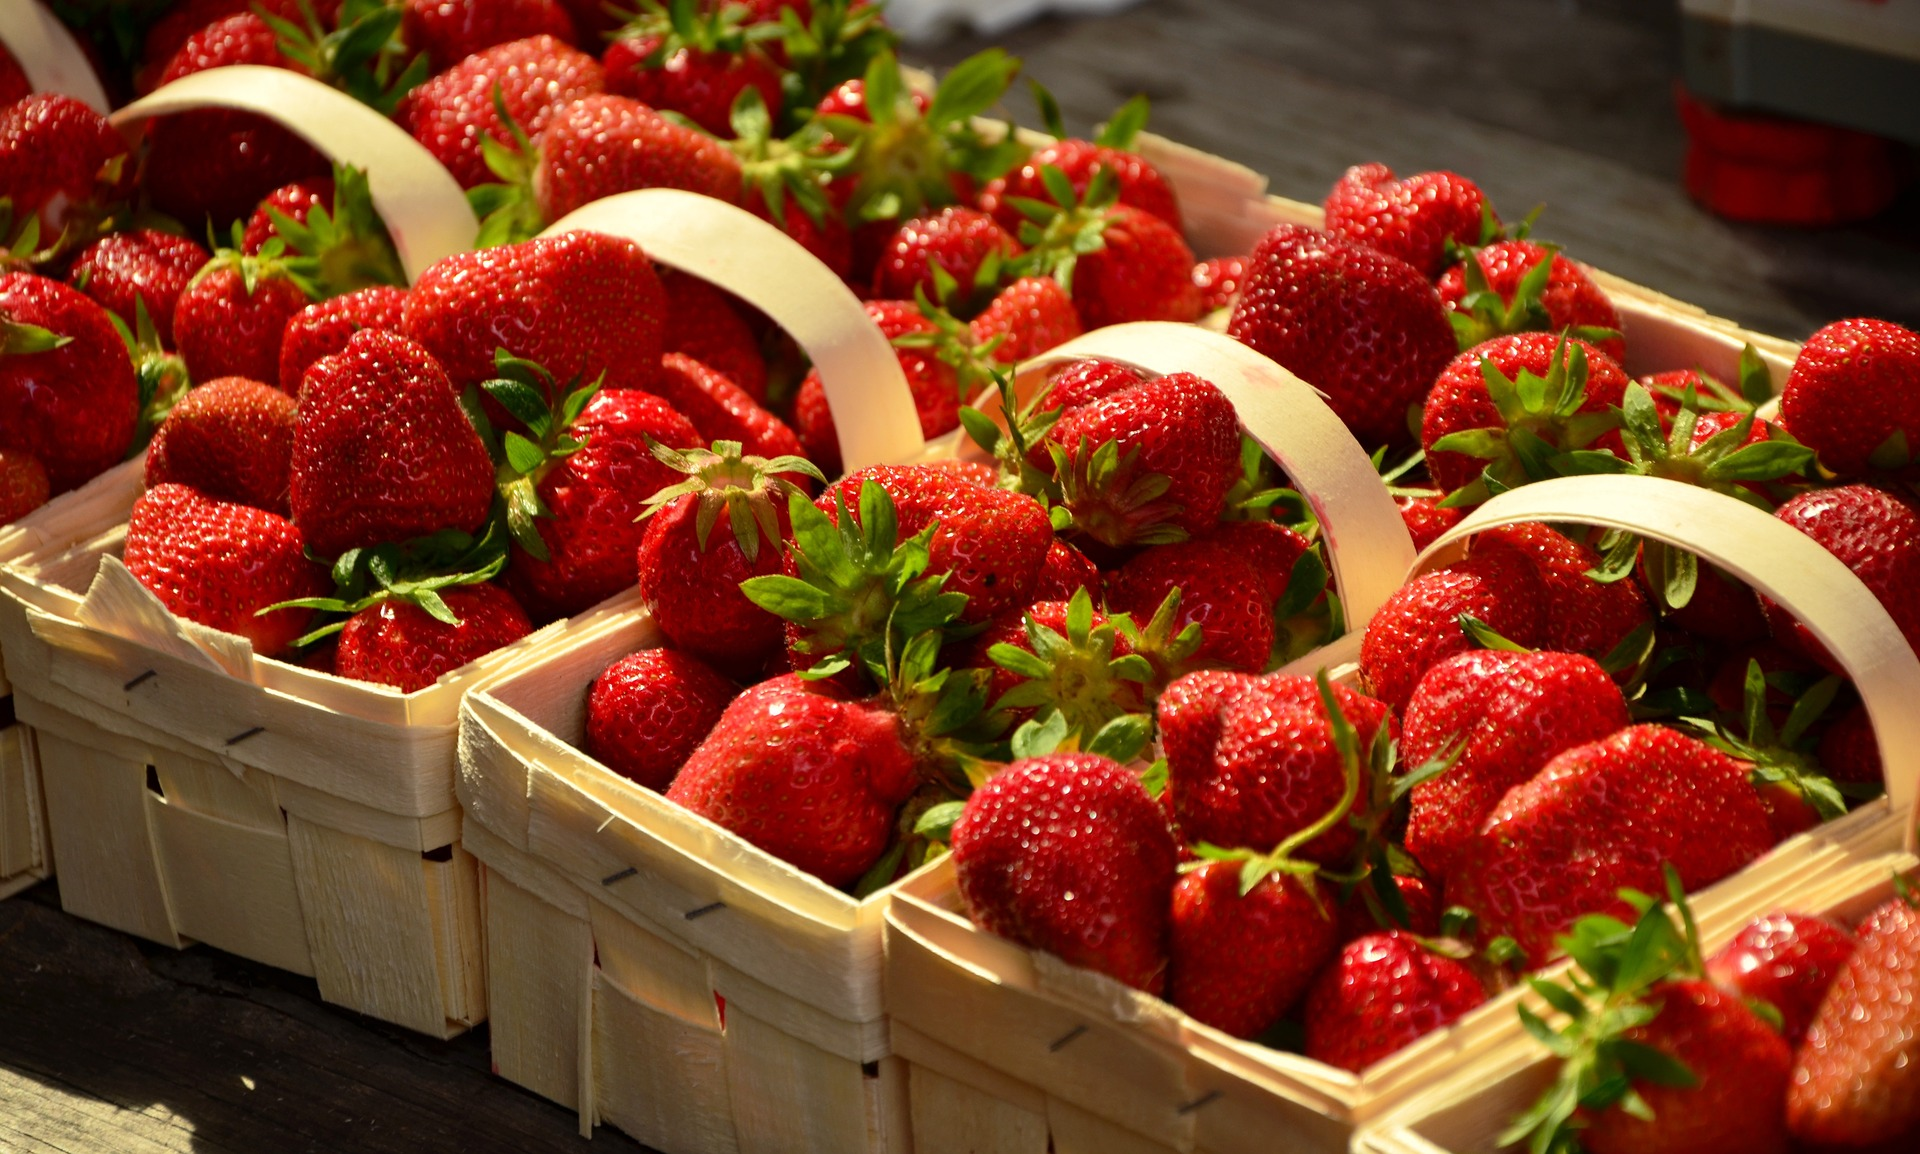 strawberries-1452717_1920